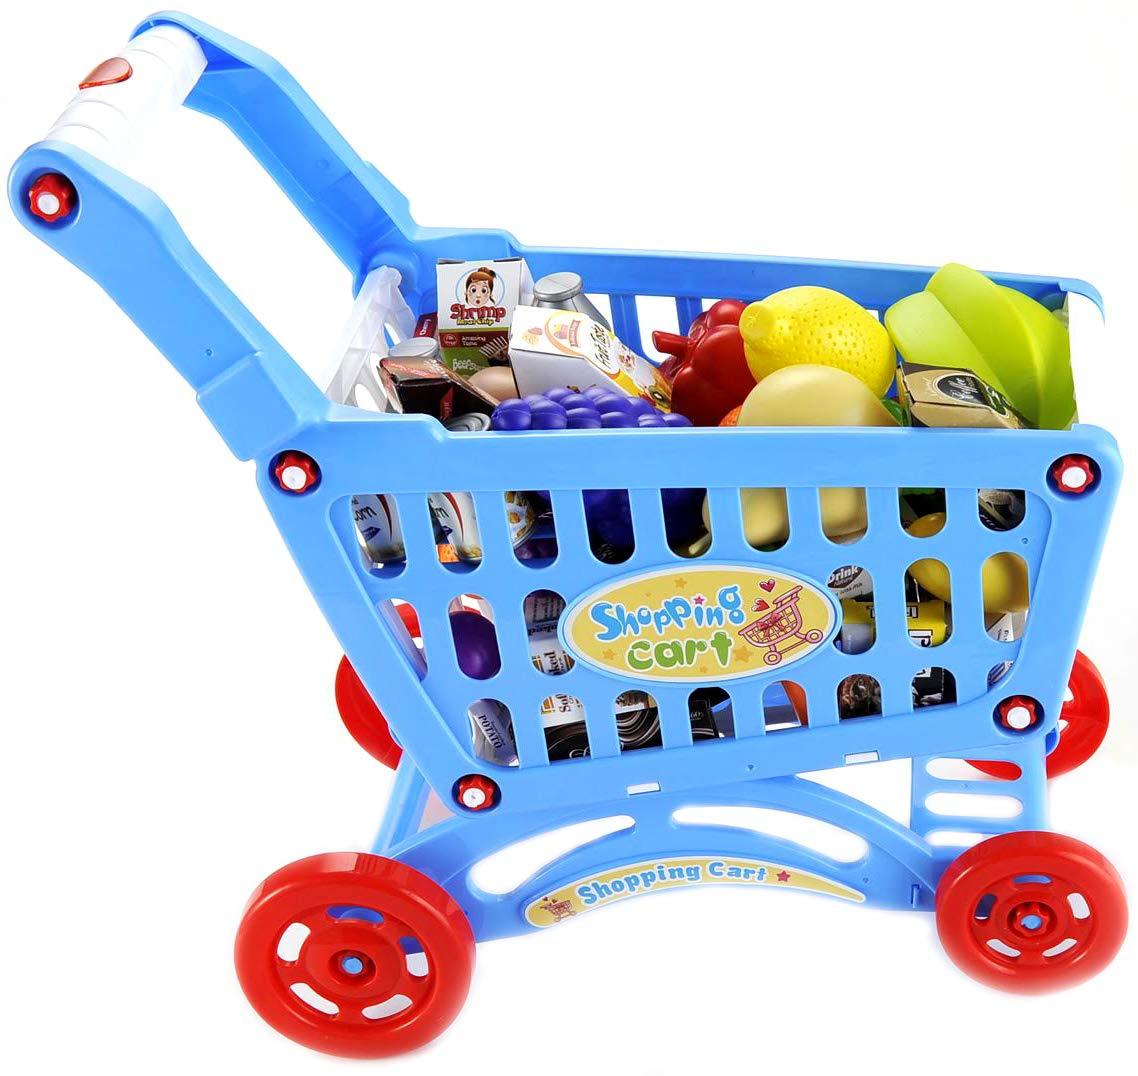 PowerTRC Mini Shopping Cart with Full Grocery Food Playset Toy for Kids -Blue